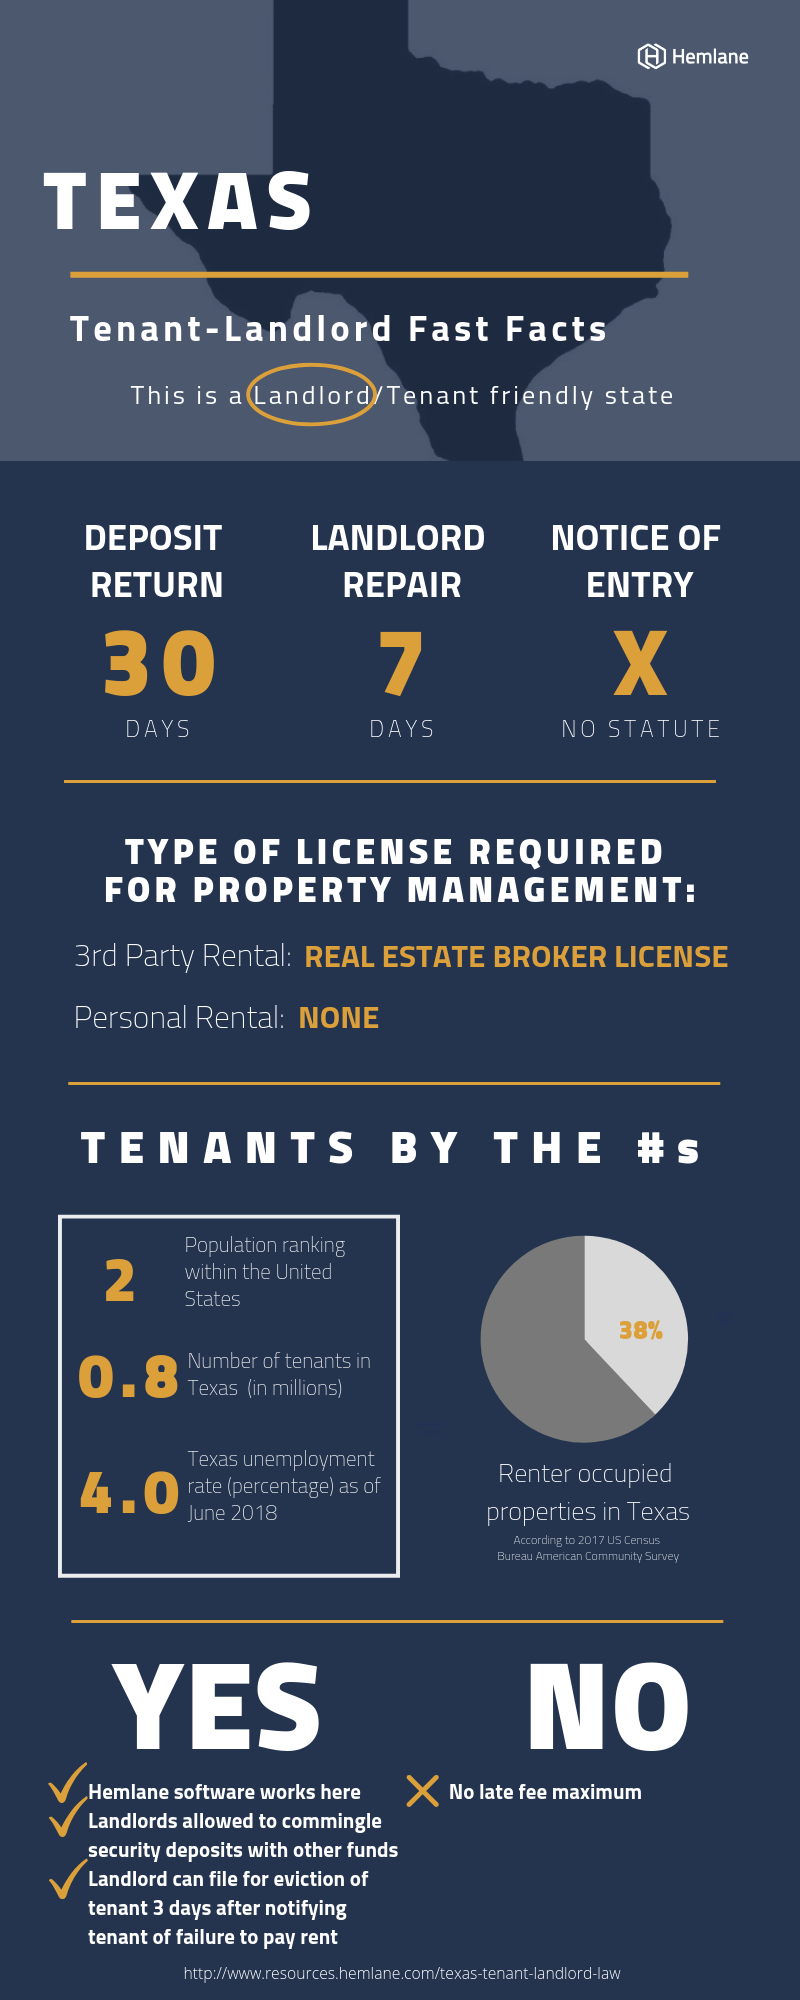 Texas-Landlord-Tenant-Law-Fast-Facts